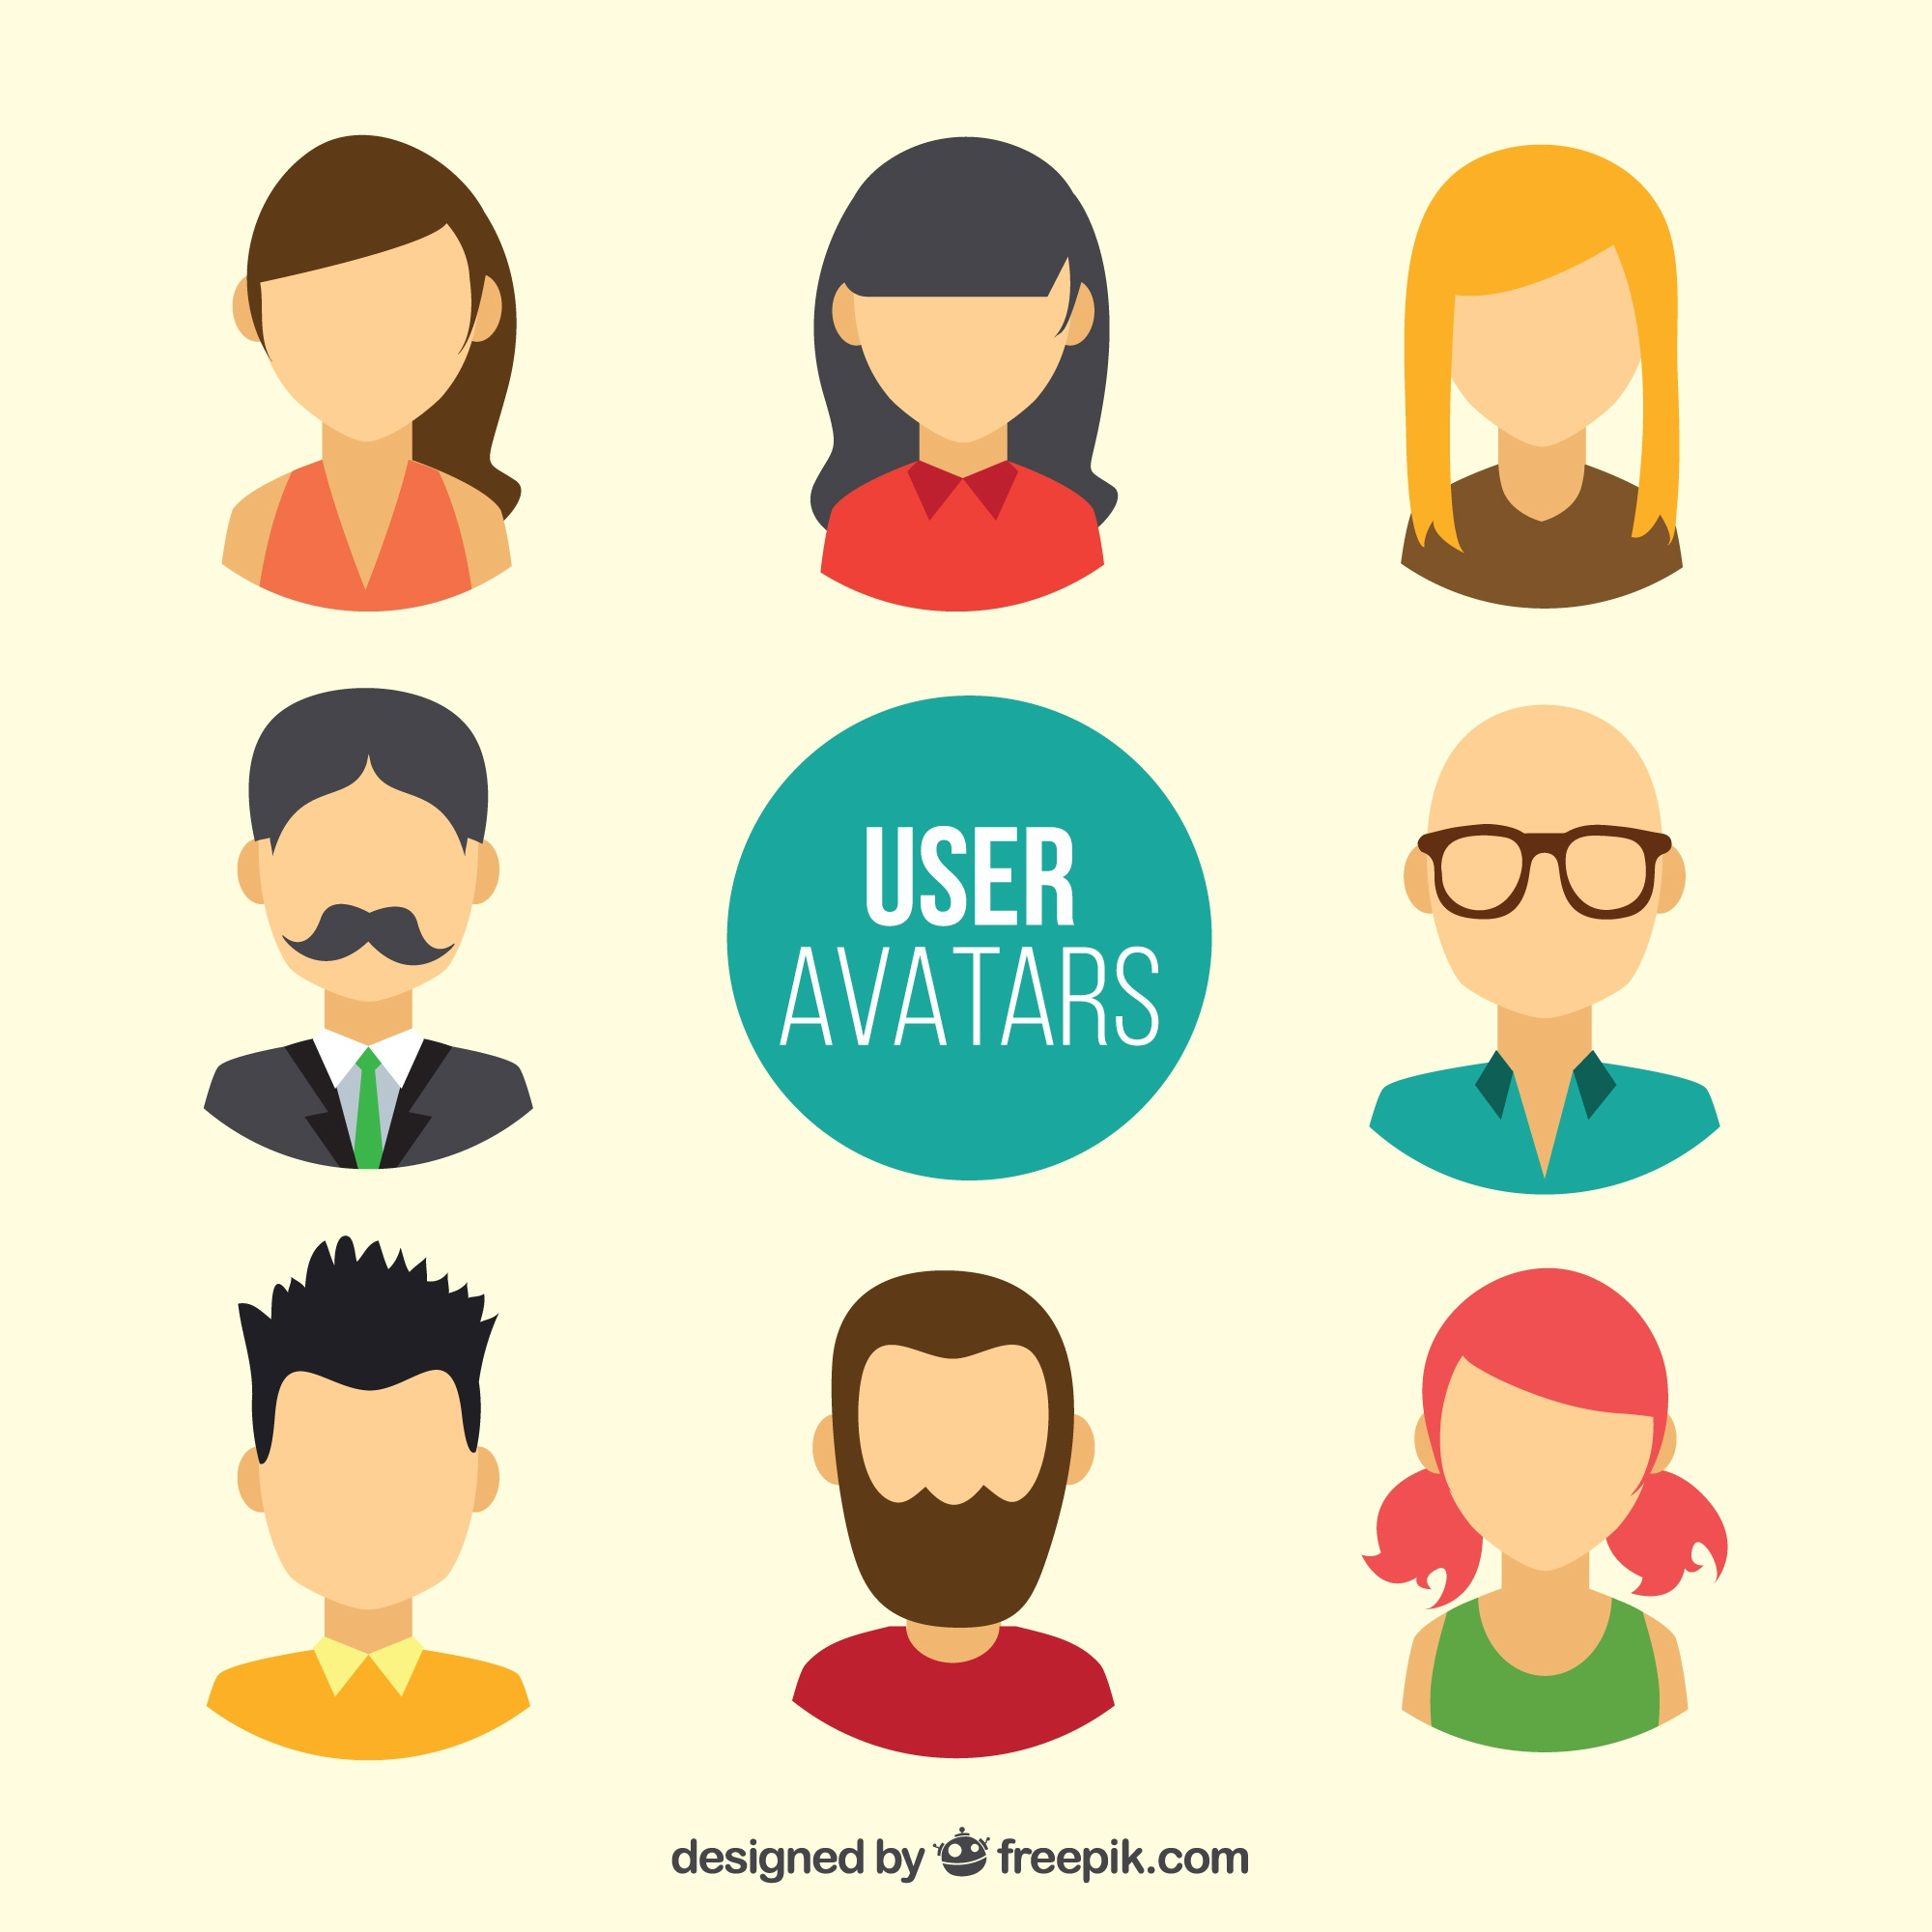 User avatars without faces